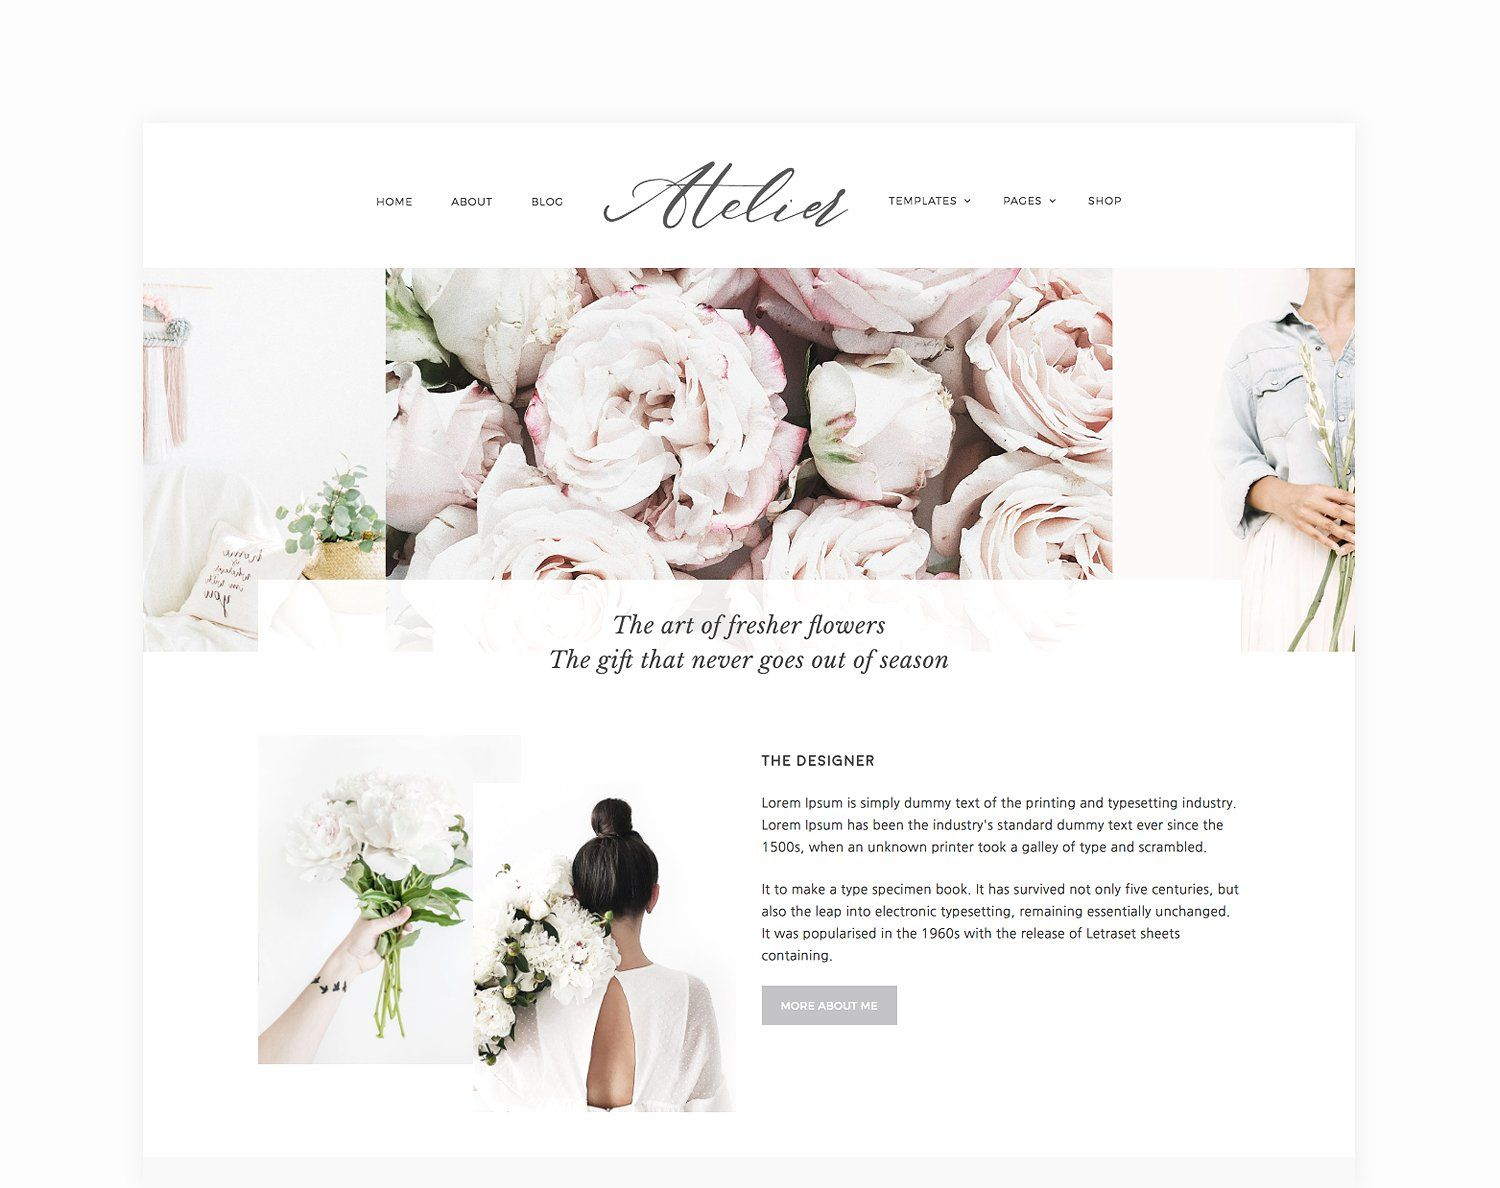 Atelier WordPress Theme - Buy Now $60 - WordPress Blog Theme, WordPress Blog Themes, Blogger Templates, Lifestyle WordPress Blog Theme, Minimalist WordPress Blog Theme, Feminine WordPress Blog Theme, Simple WordPress Blog Theme, Business WordPress Theme, Responsive WordPress Theme, Modern WordPress Theme, Elegant WordPress Theme, Magazine WordPress Theme https://avemateiu.com/themes/